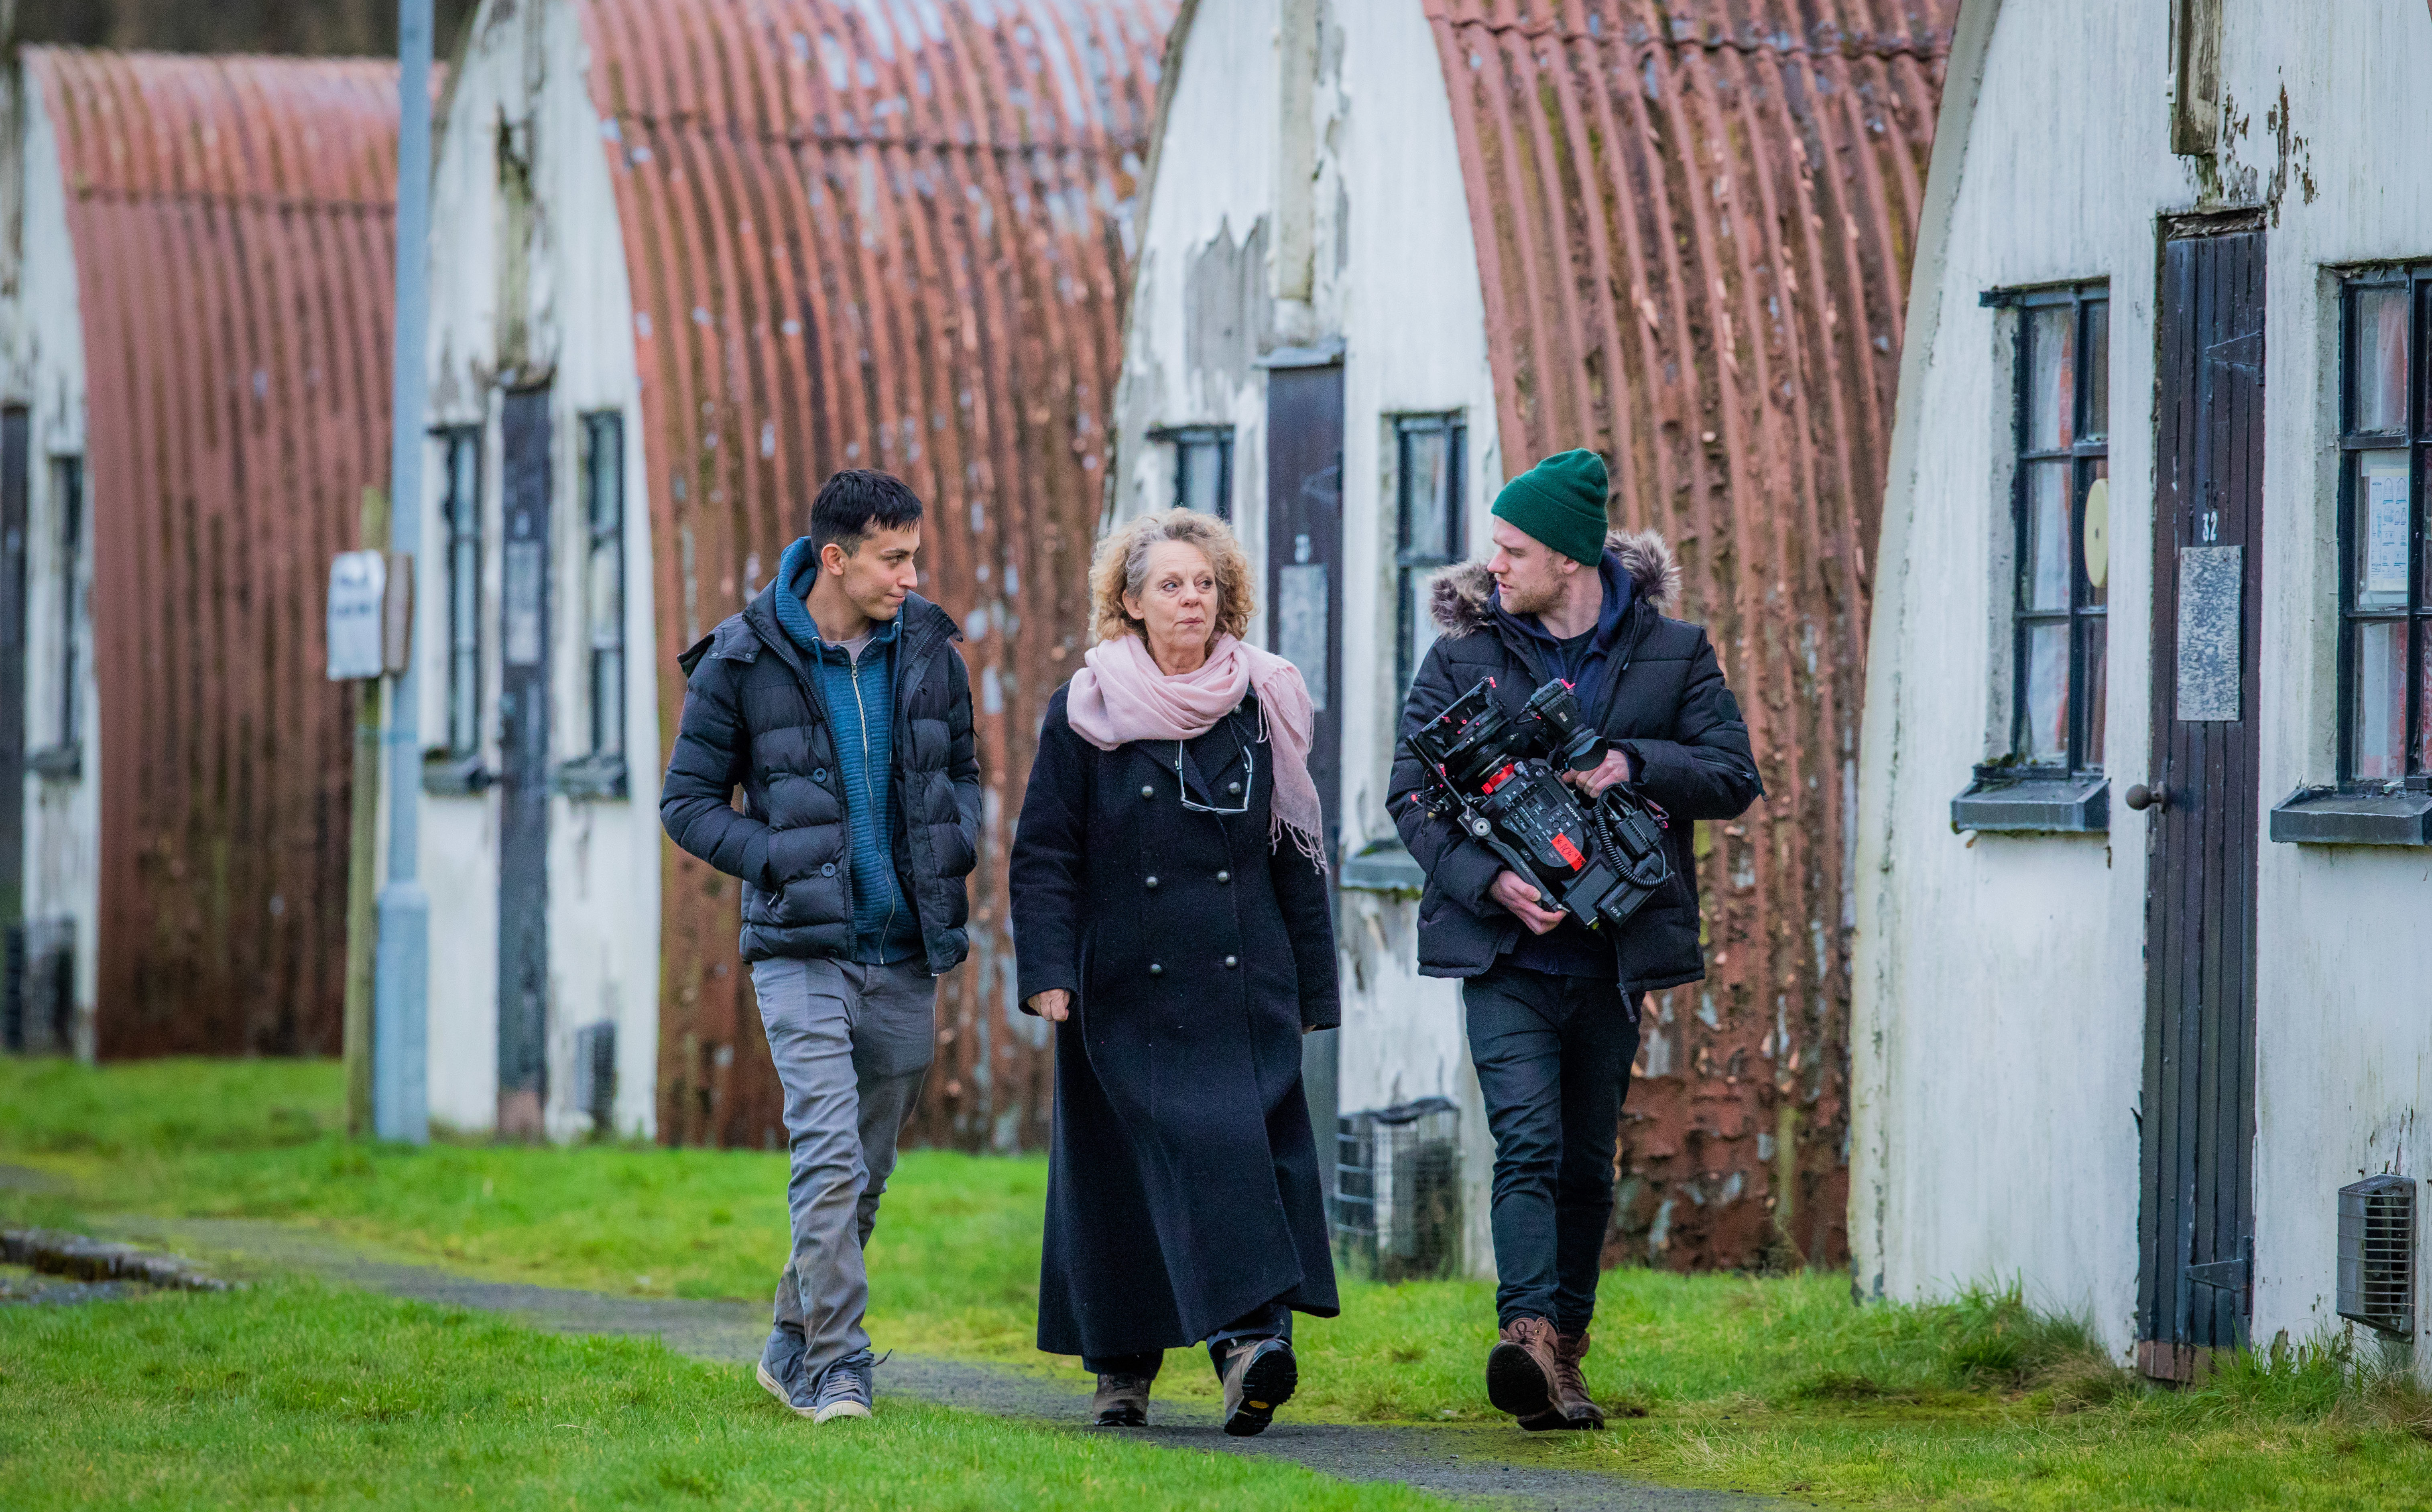 Actor Mohamad Khalil (playing lead), Dr Chrissie Gale (University of Strathclyde / project creator) and director of the drama Jonny Blair.